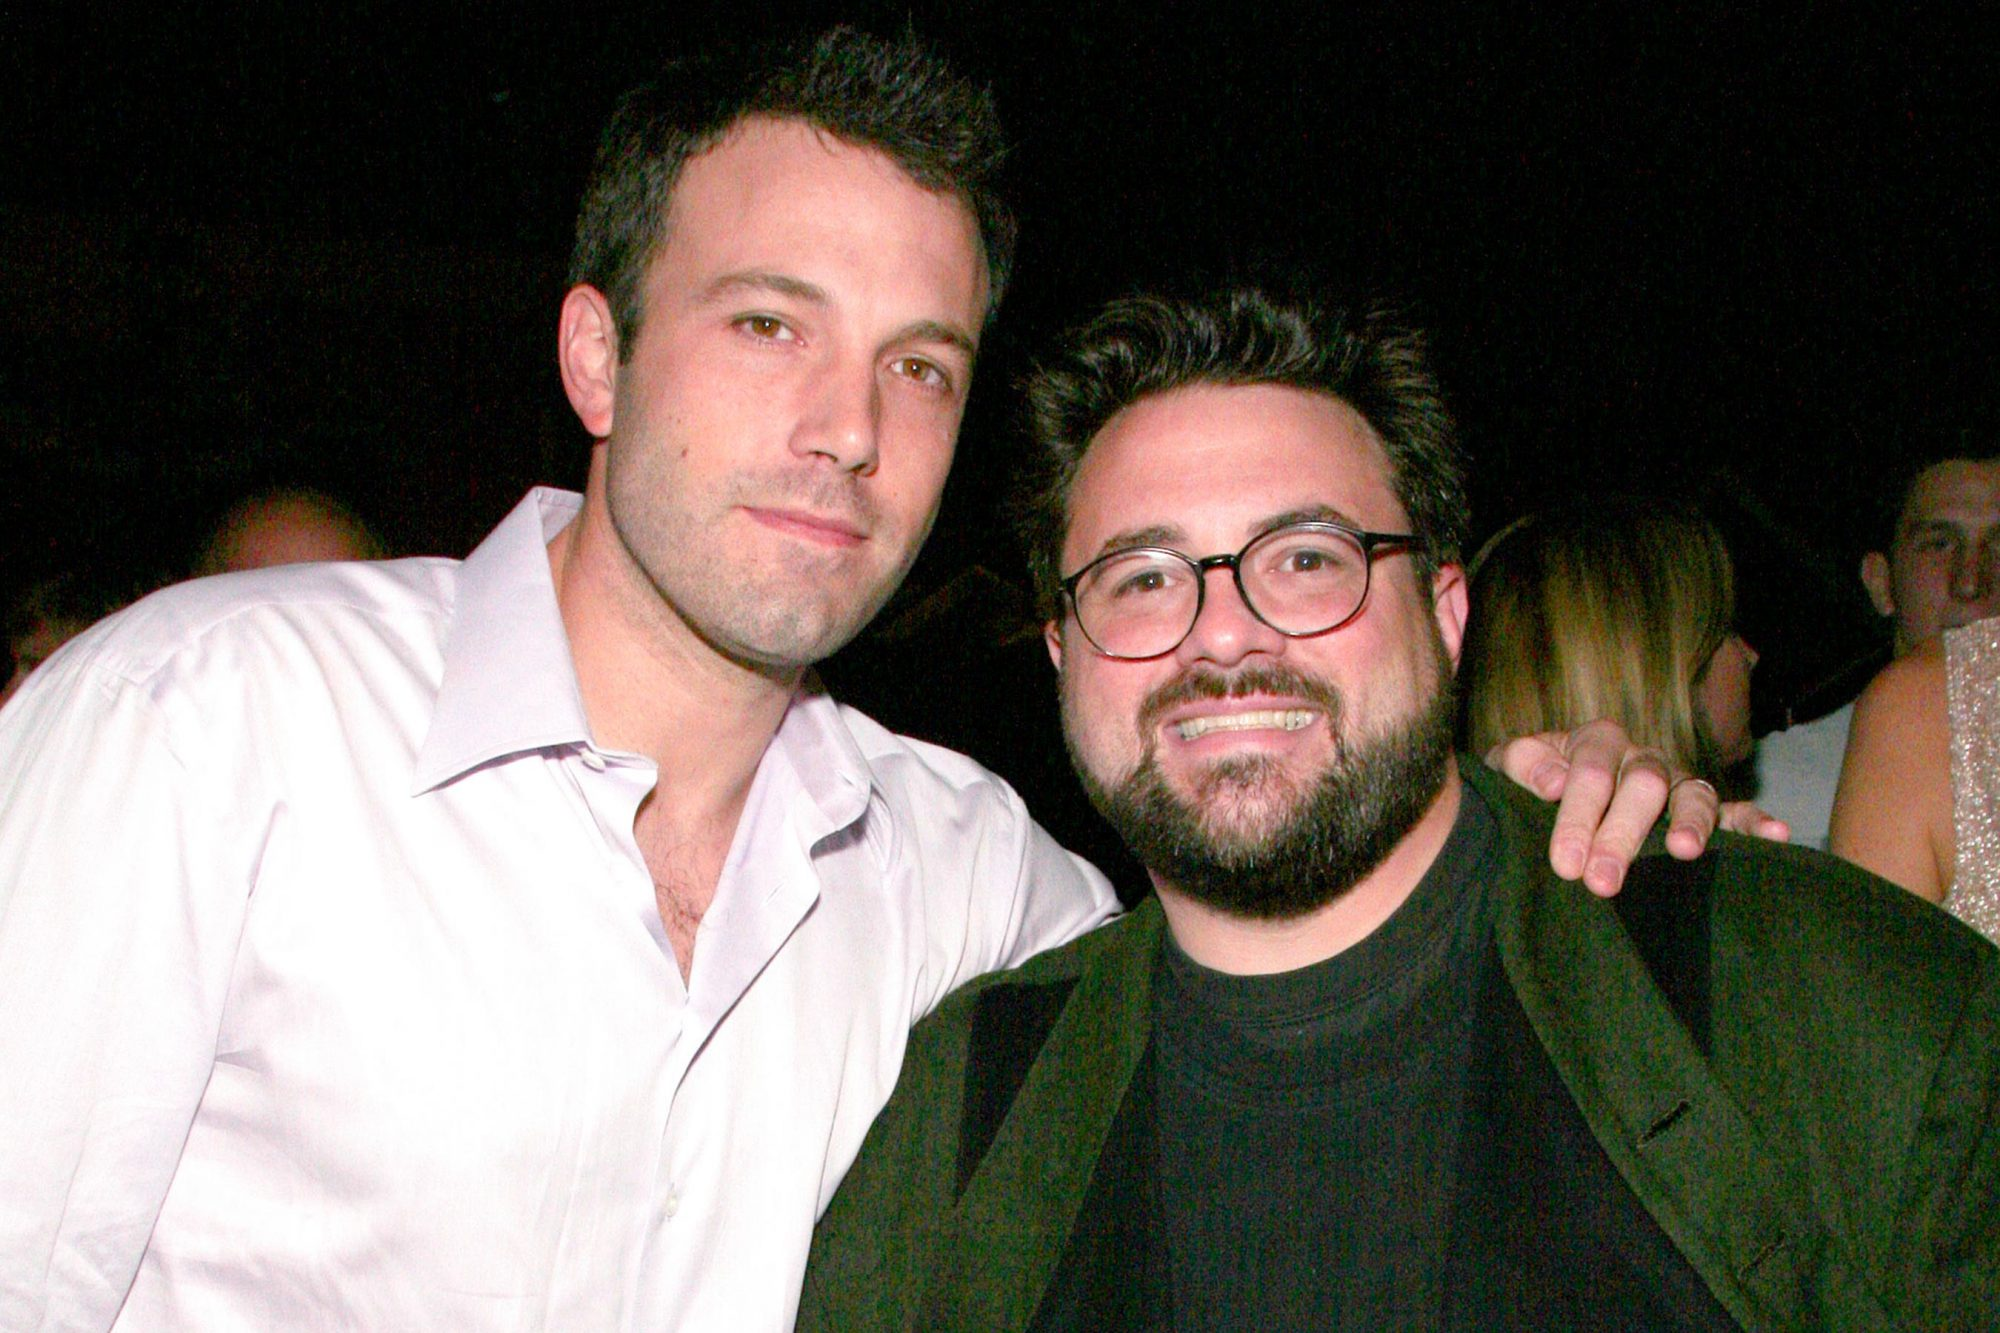 Ben Affleck and Kevin Smith (Photo by Paul Redmond/WireImage)